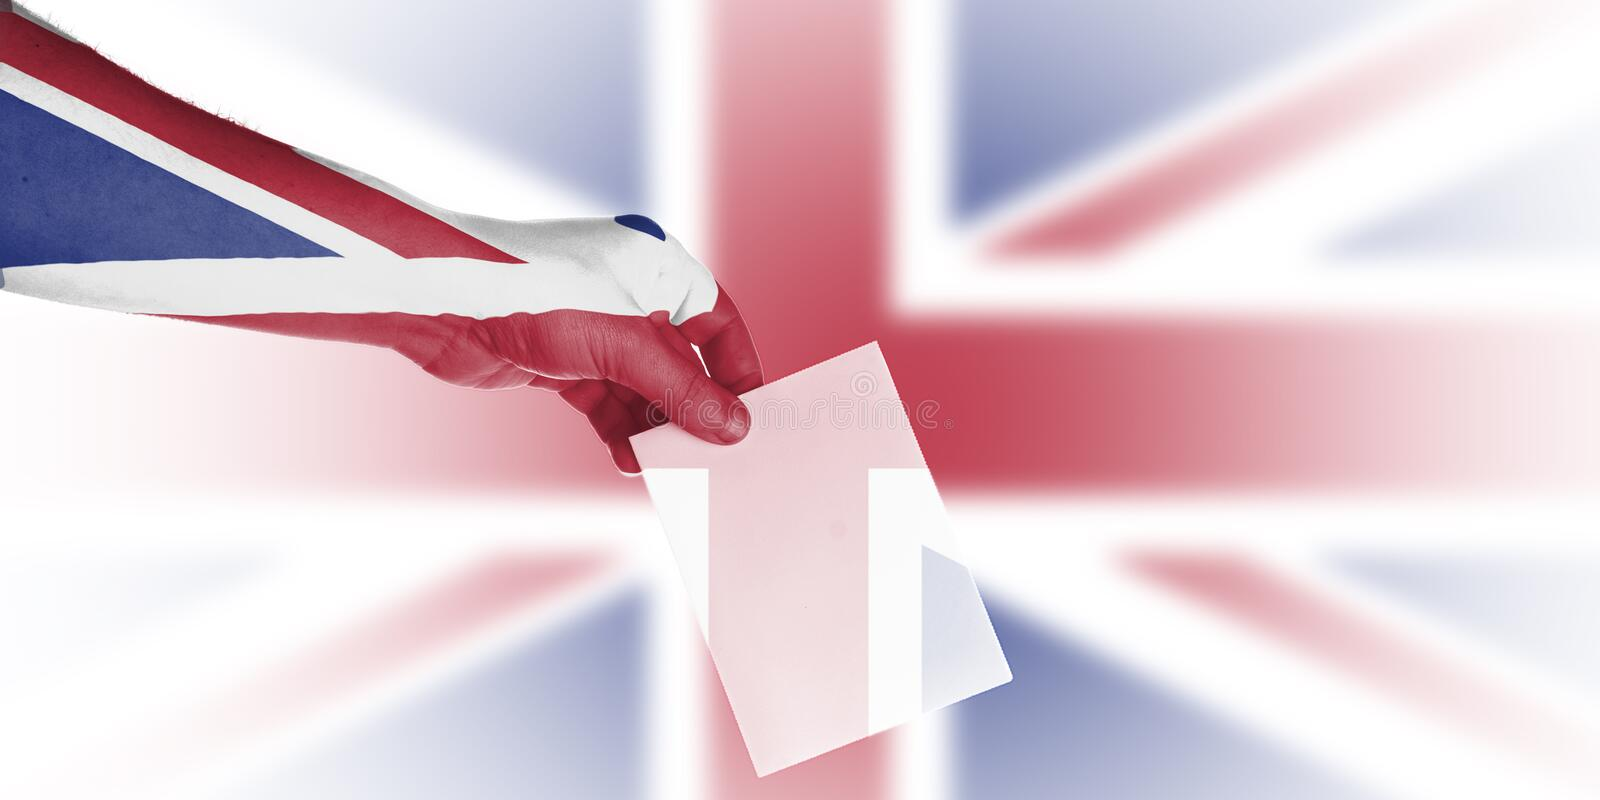 Uk local elections wallpaper royalty free stock image